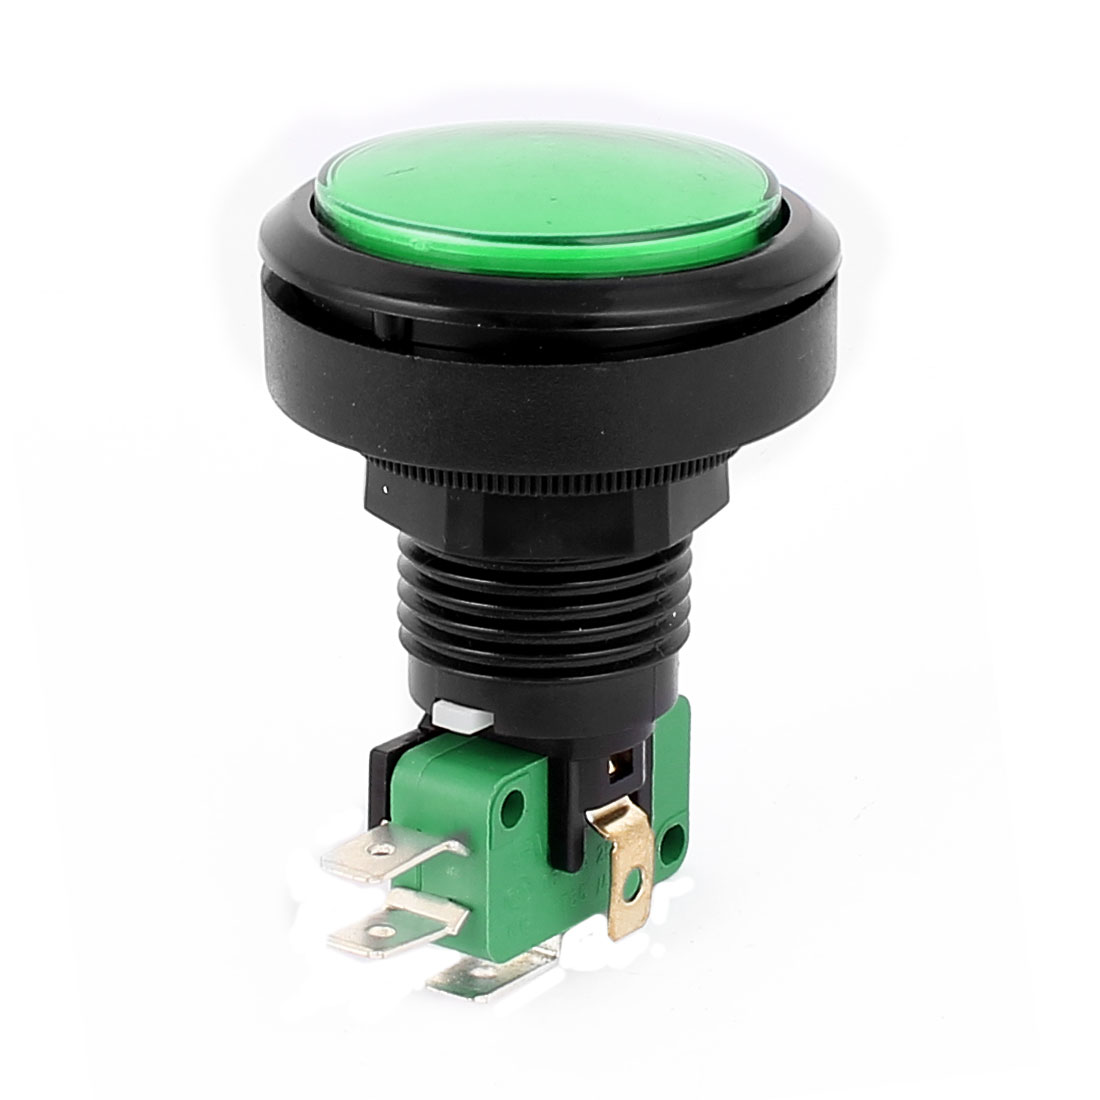 Arcade Game Machines 24mm Thread Dia Cap Momentary SPDT Push Button Switch Green